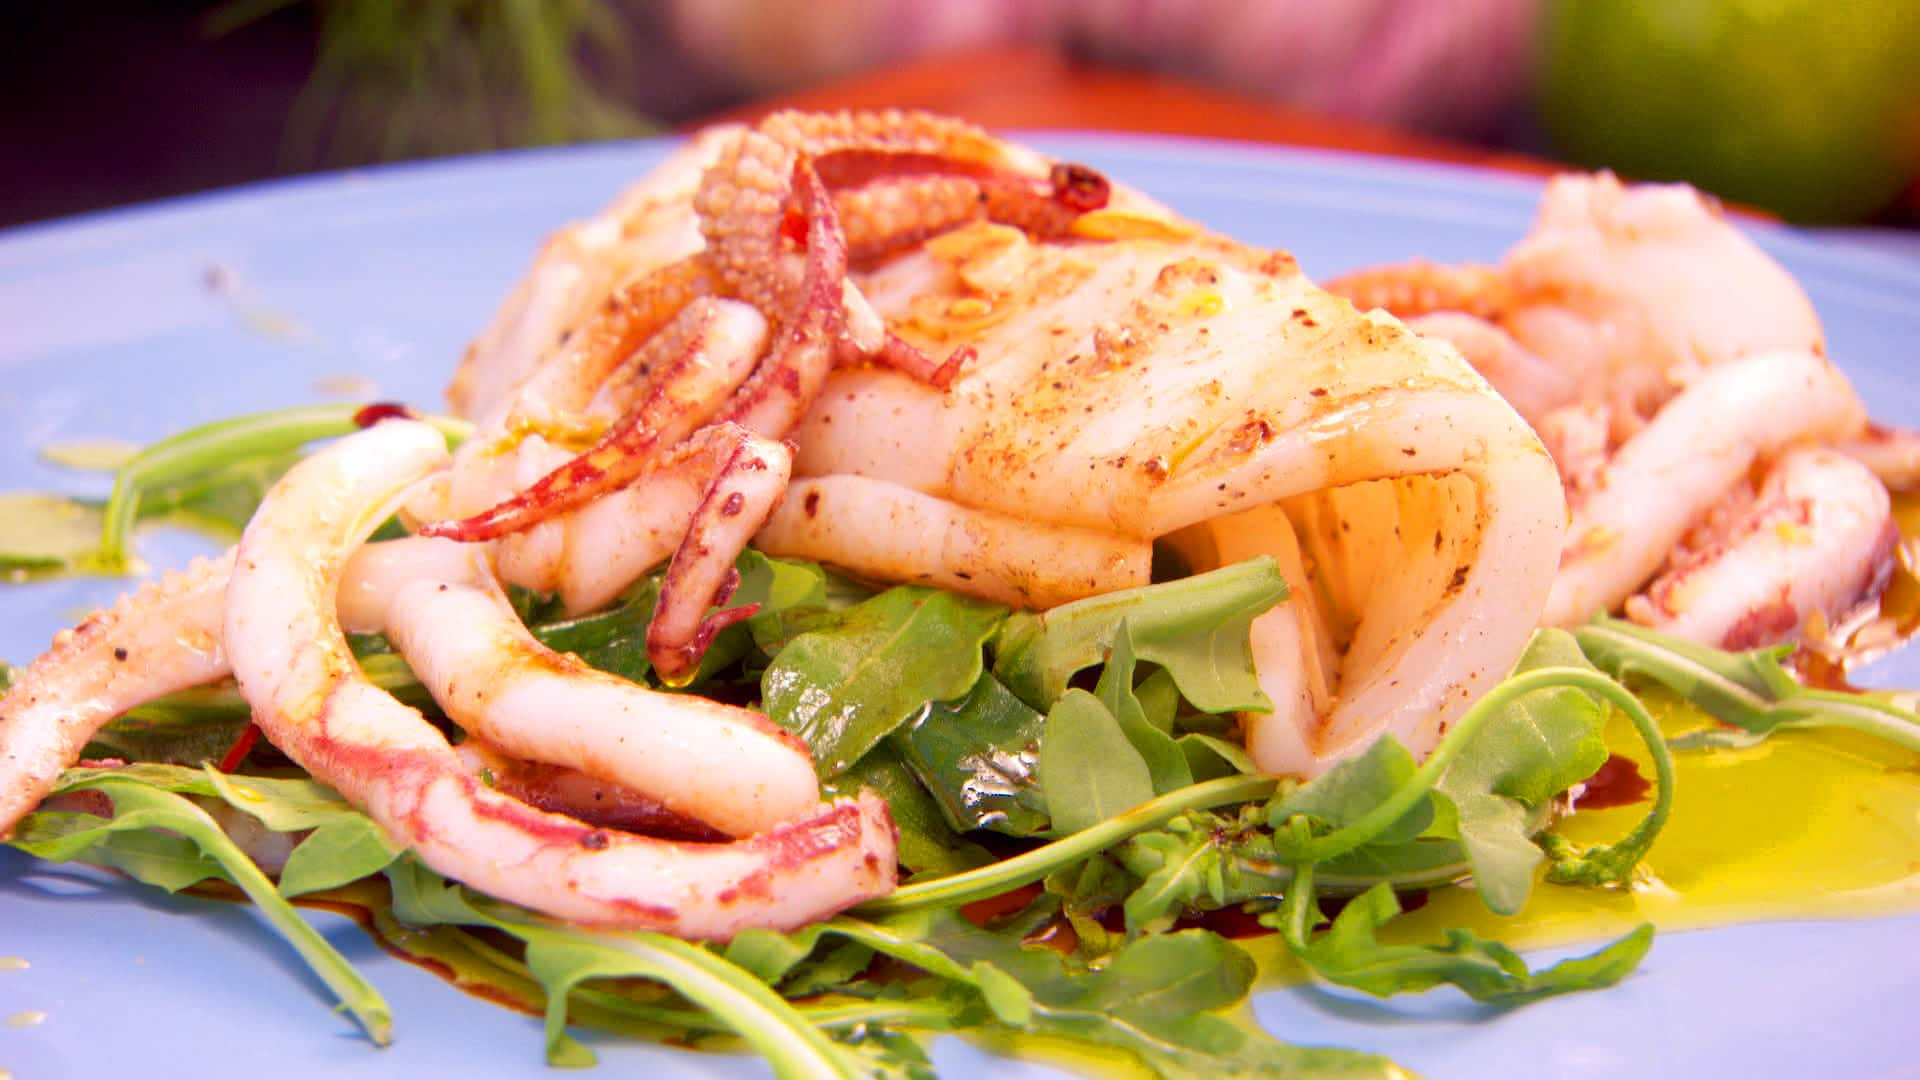 Squid salad with apples and cheese